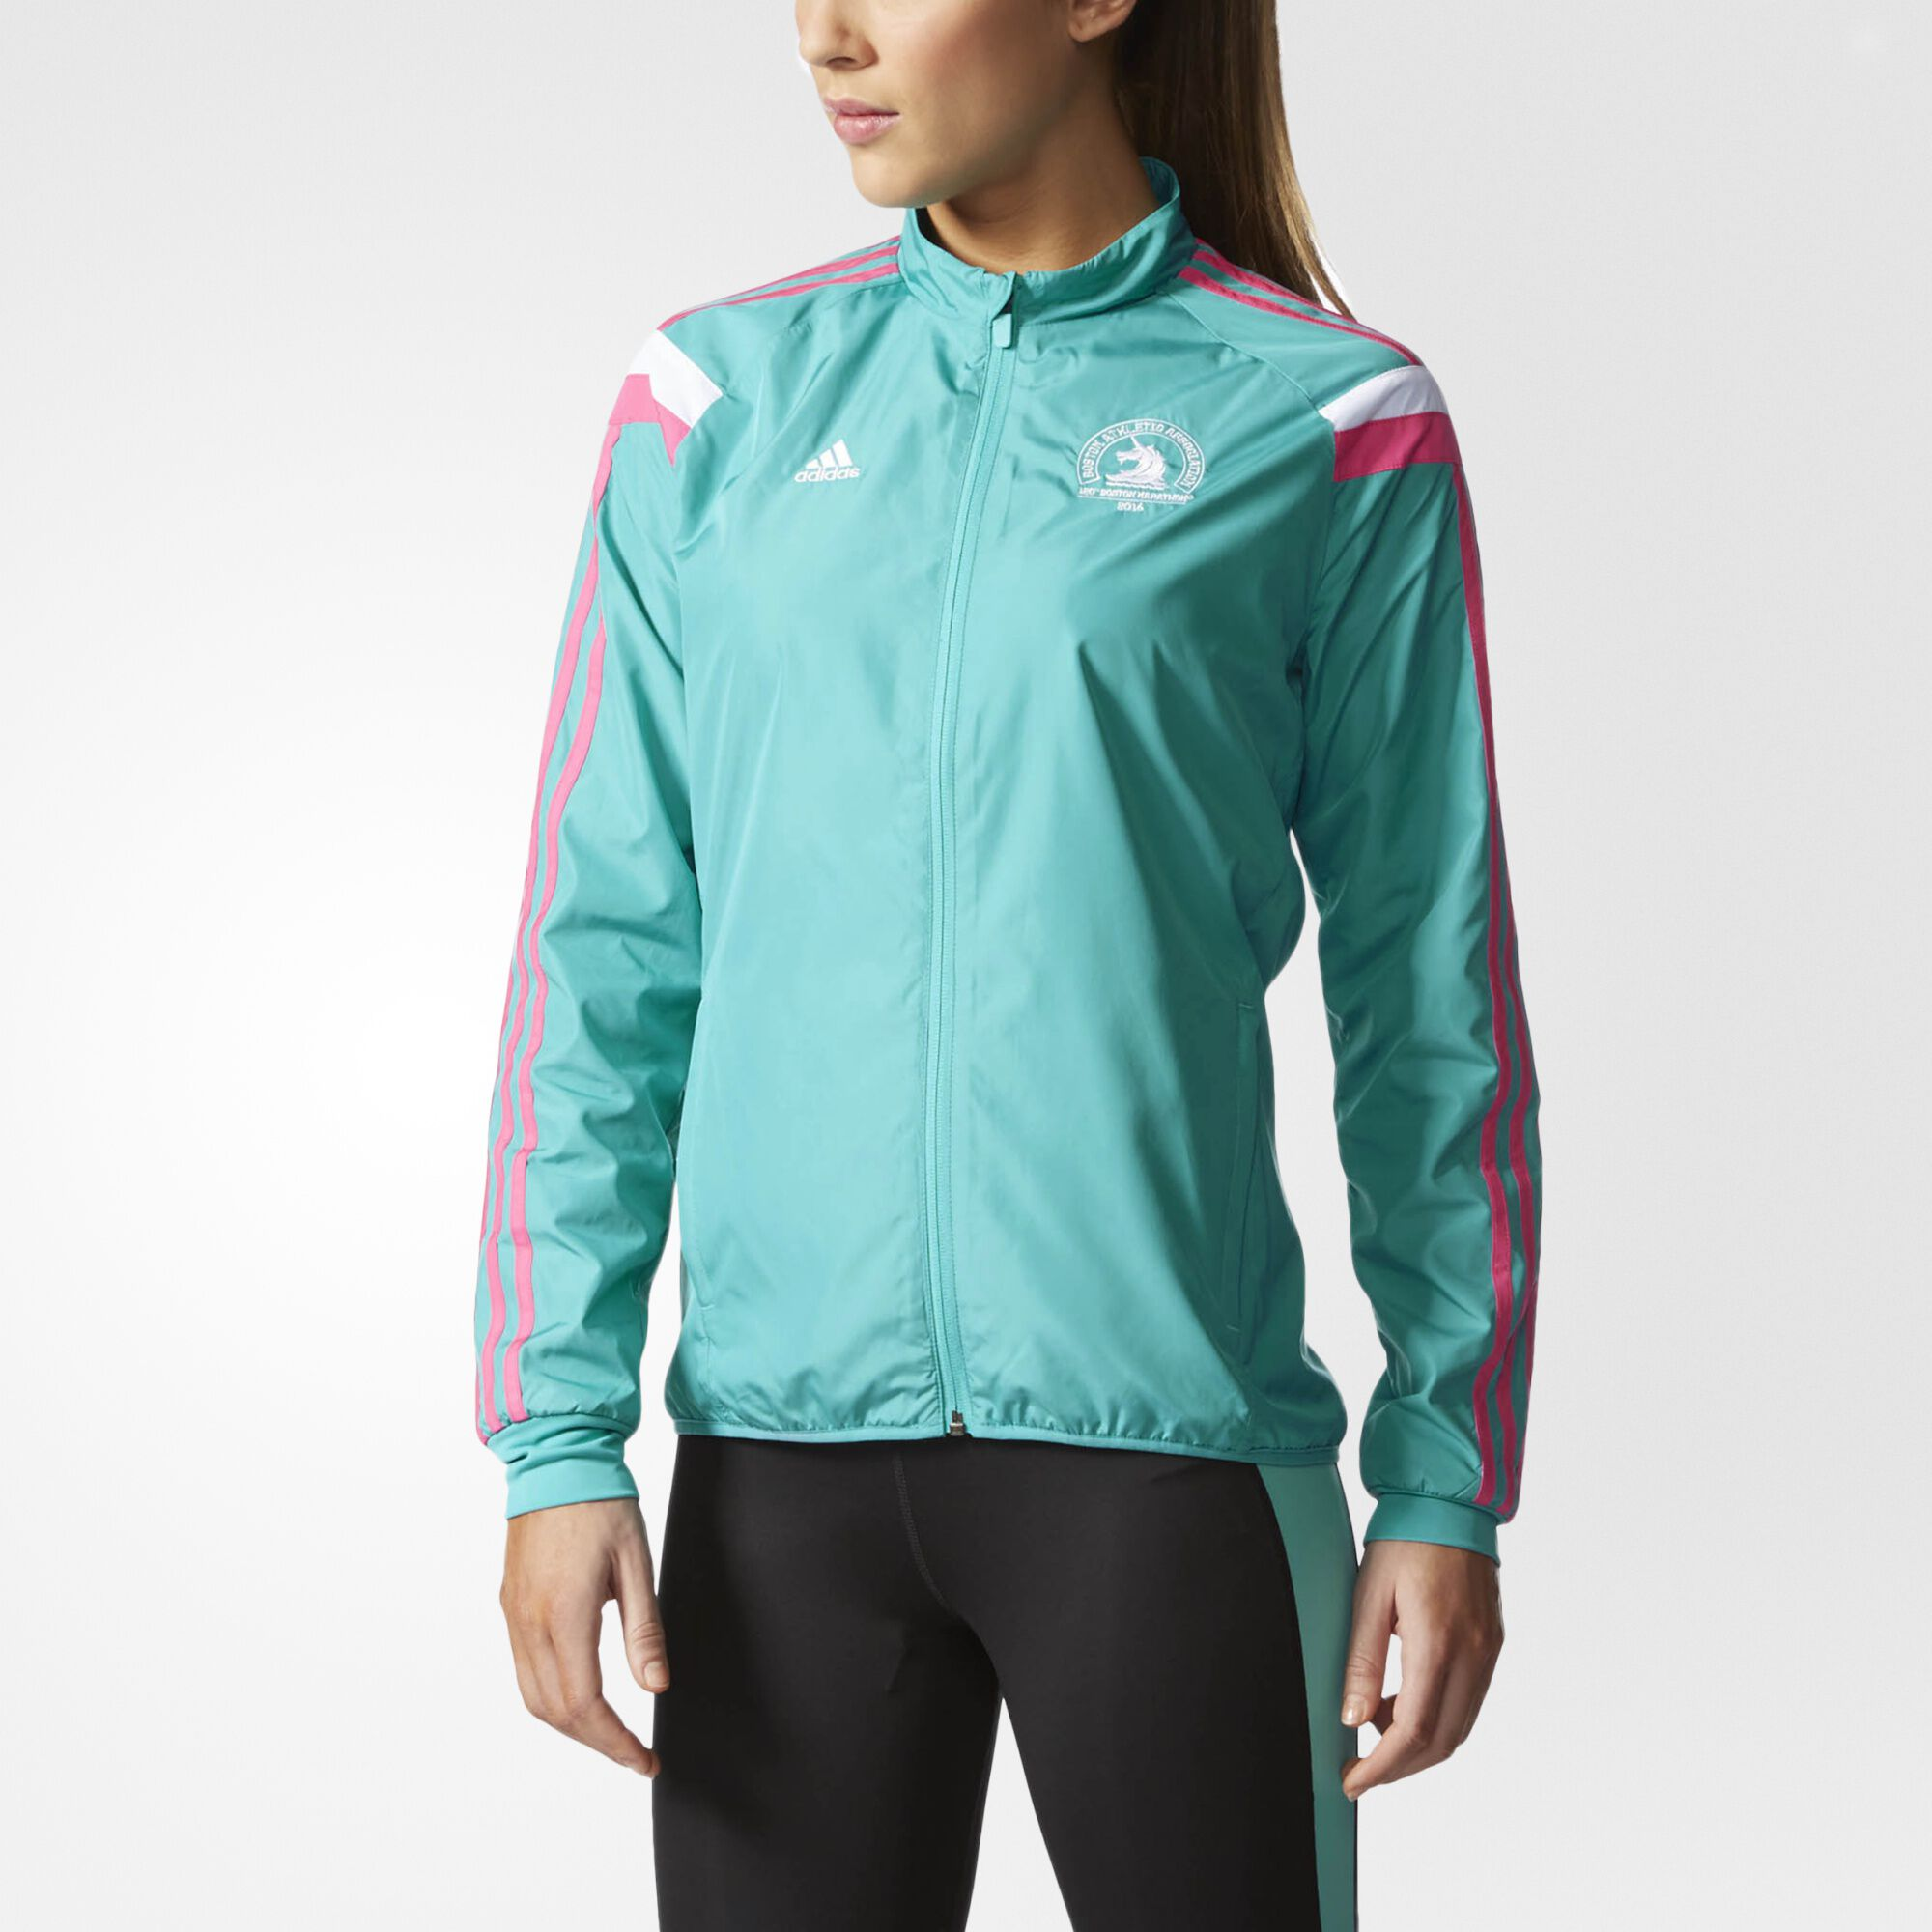 adidas for women on sale